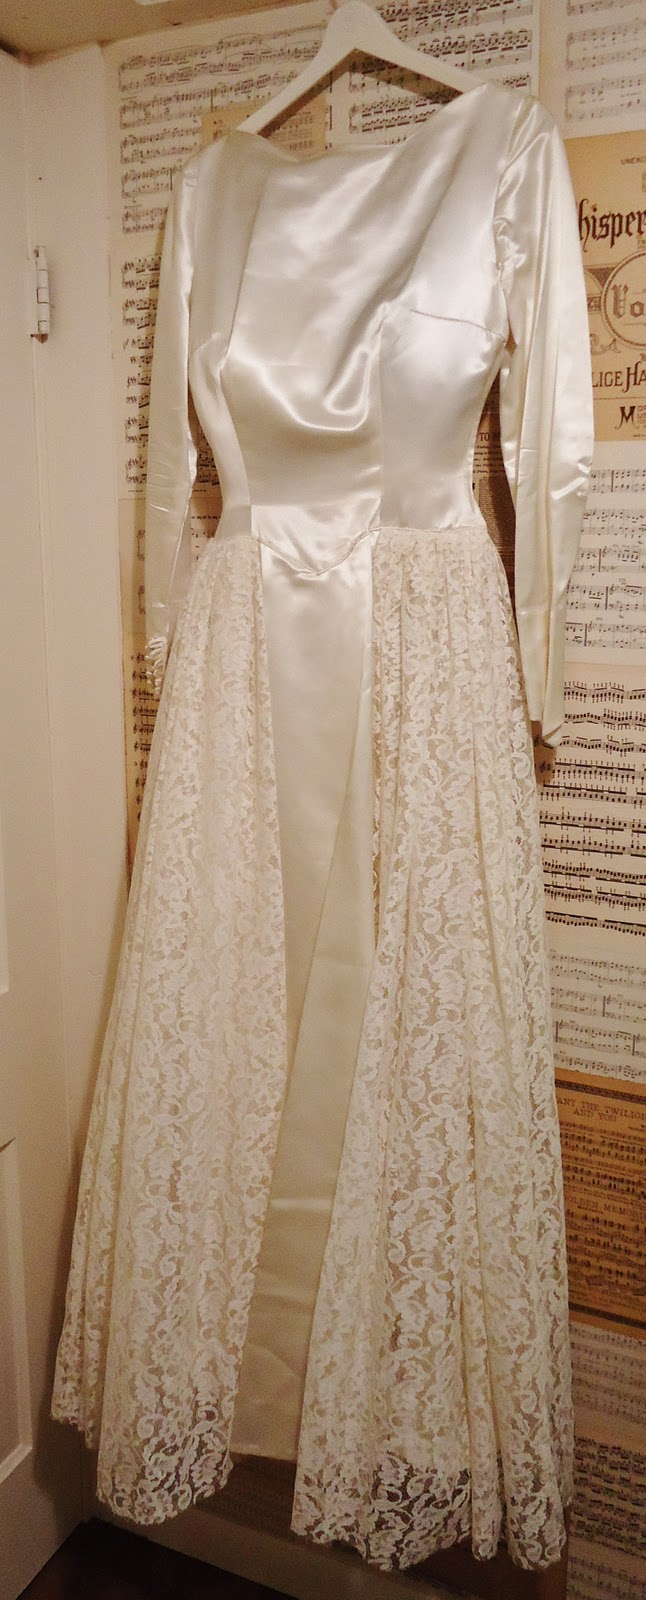 Antique Wedding Dress via Knick of Time